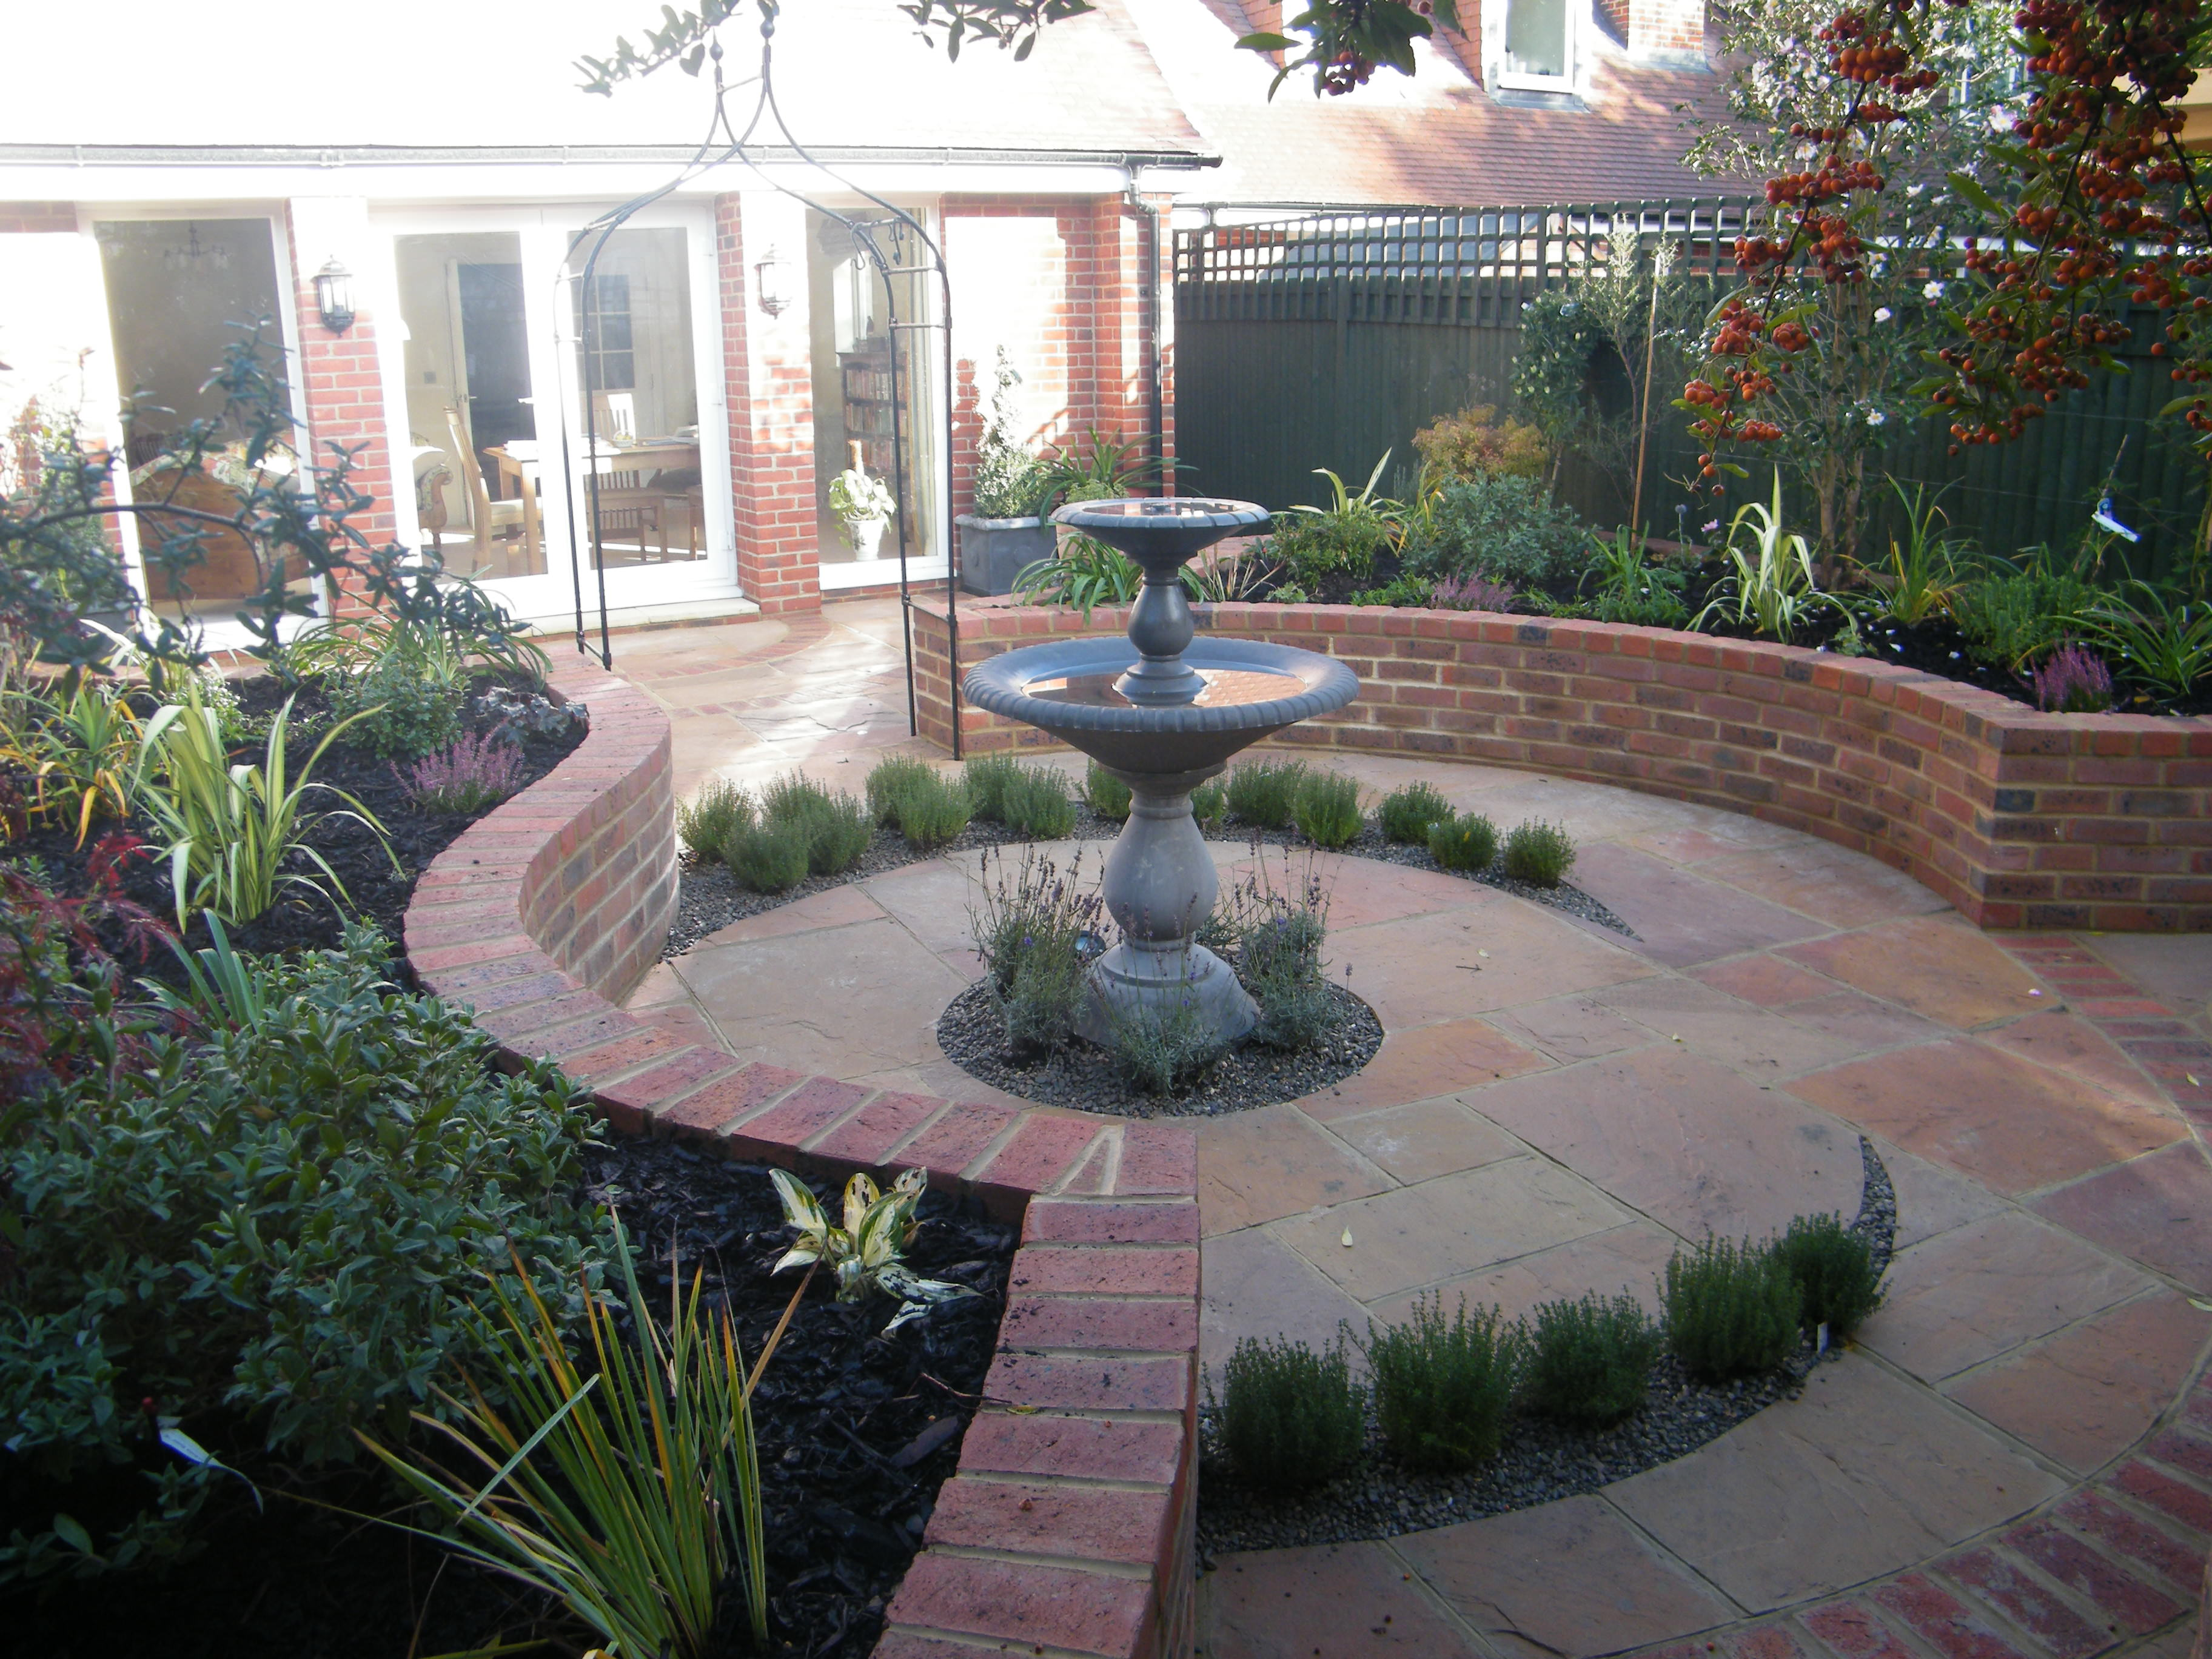 Our Top 20 New Build Garden Ideas   Floral & Hardy